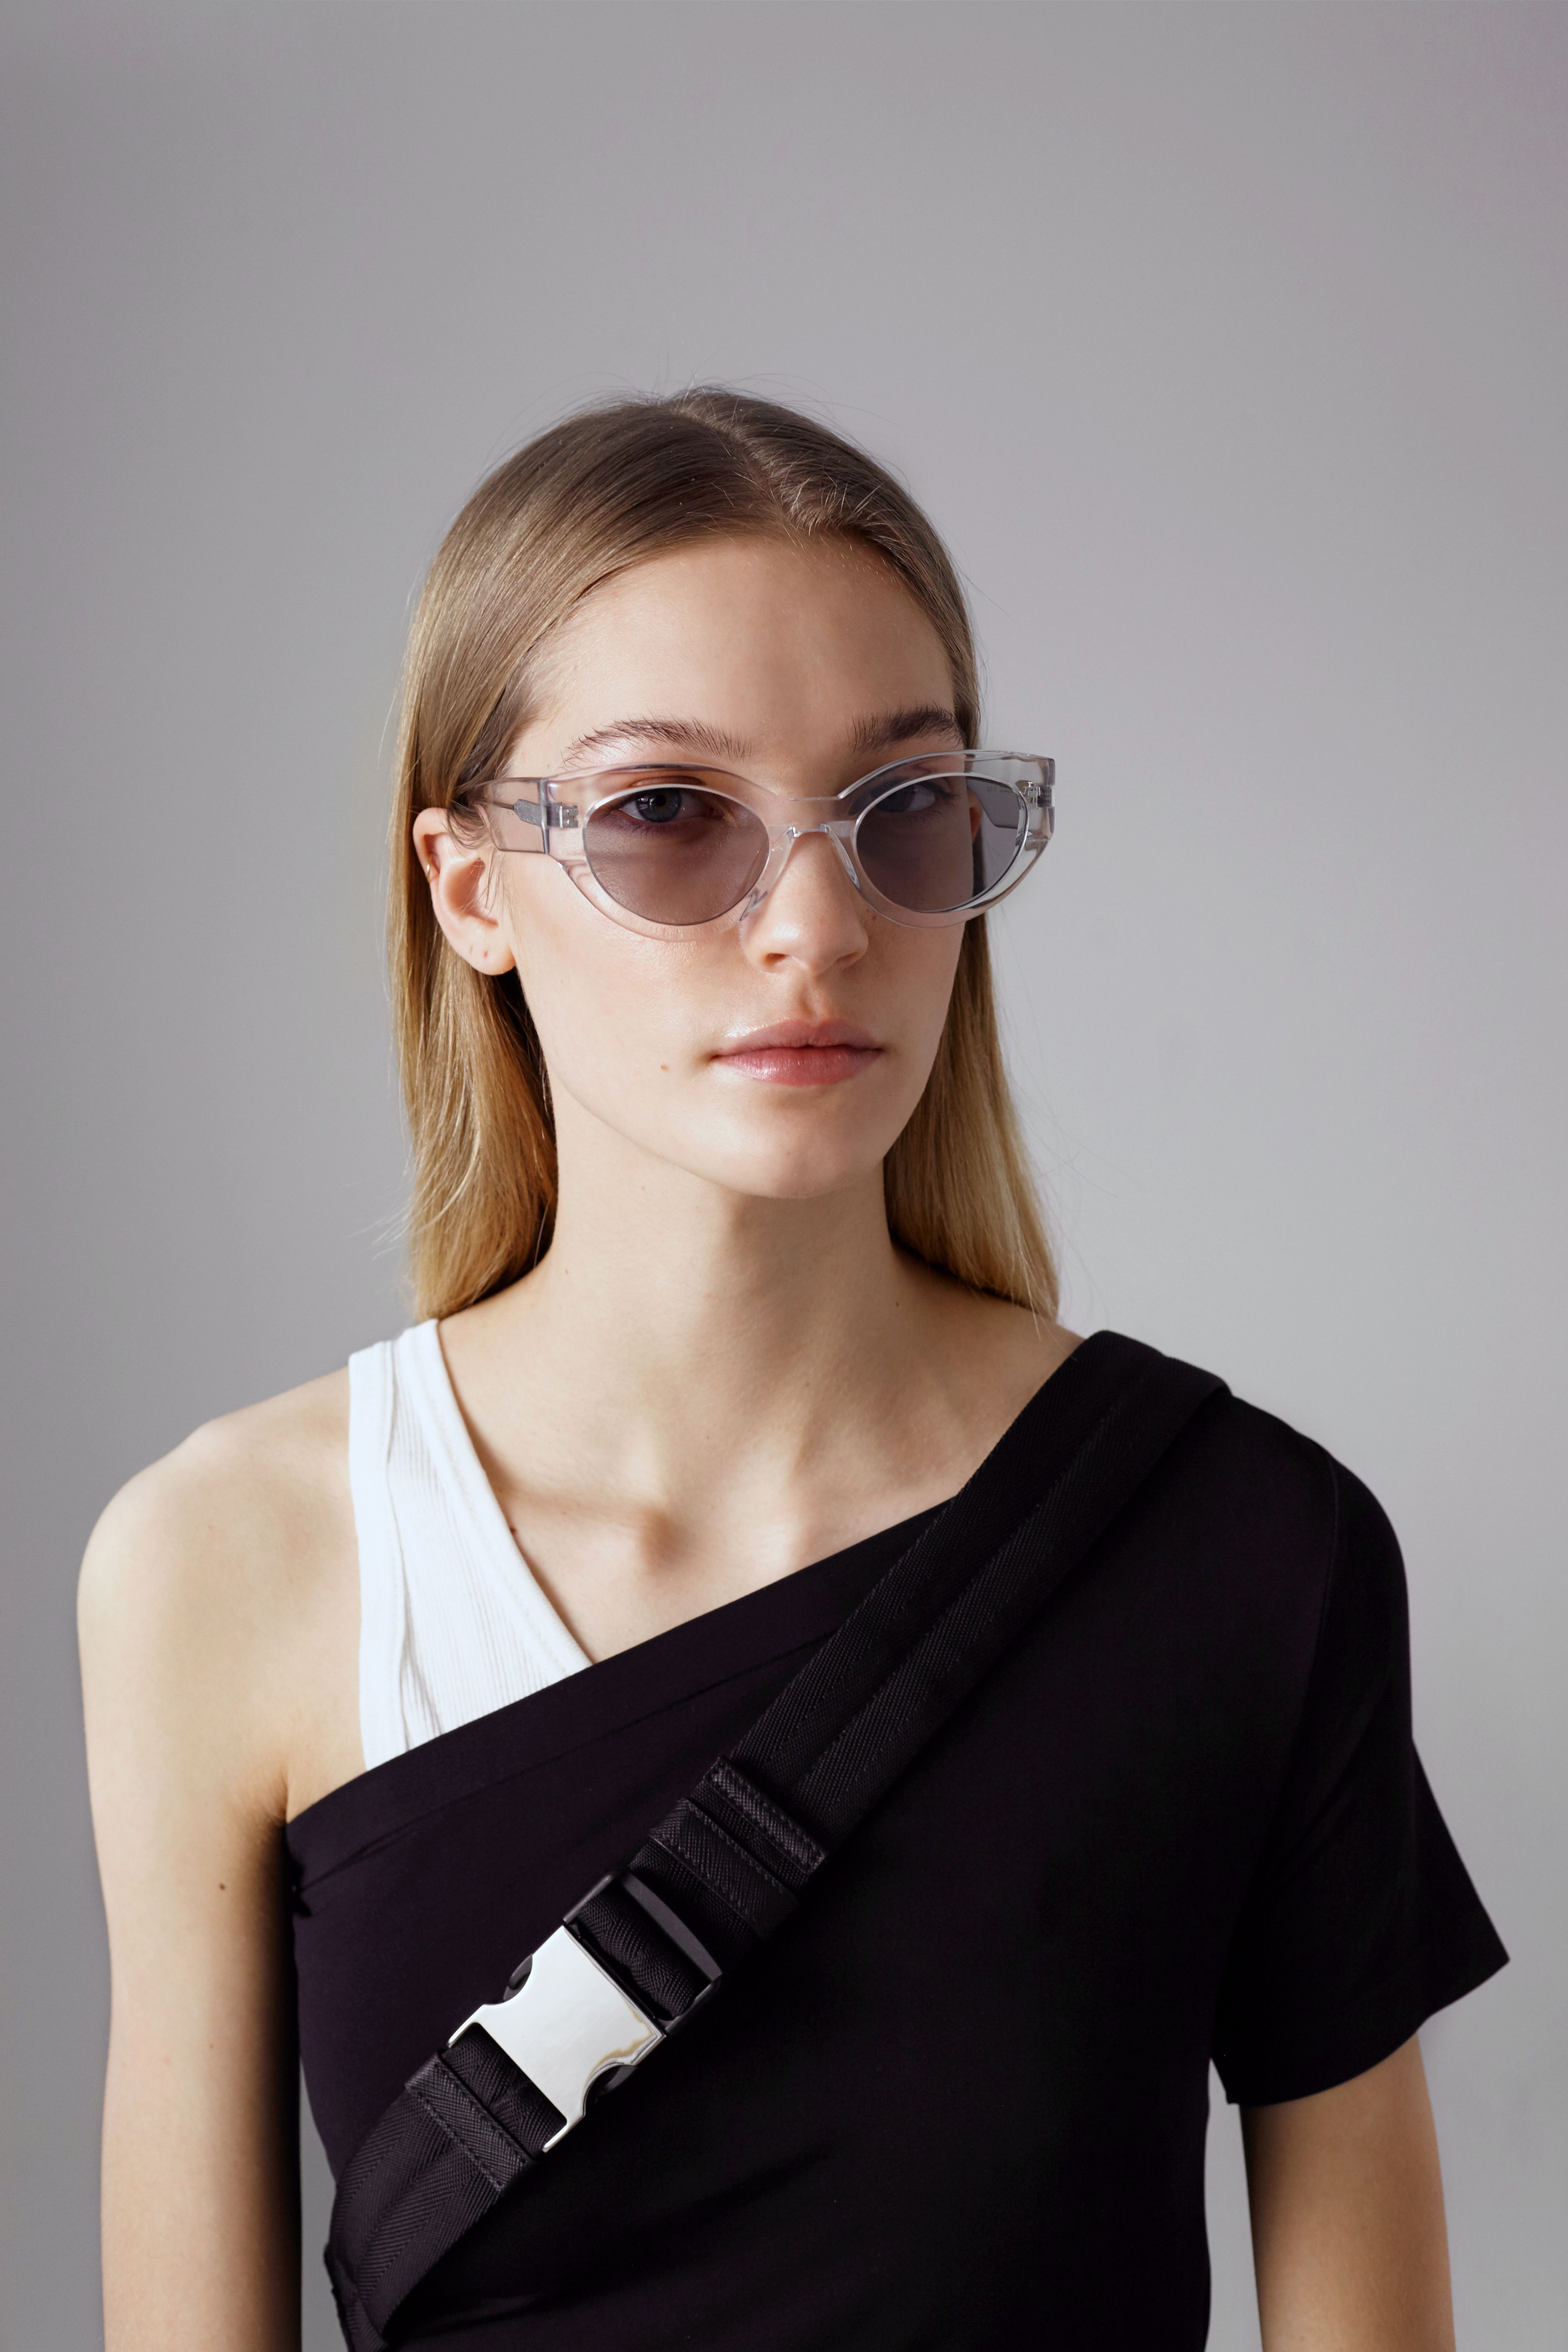 138e9d7c5a2 2018 NEW SUNGLASSES LOOKBOOK Tazi C1 from RED WIDE OPEN collection   gentlemonster  sunglasses